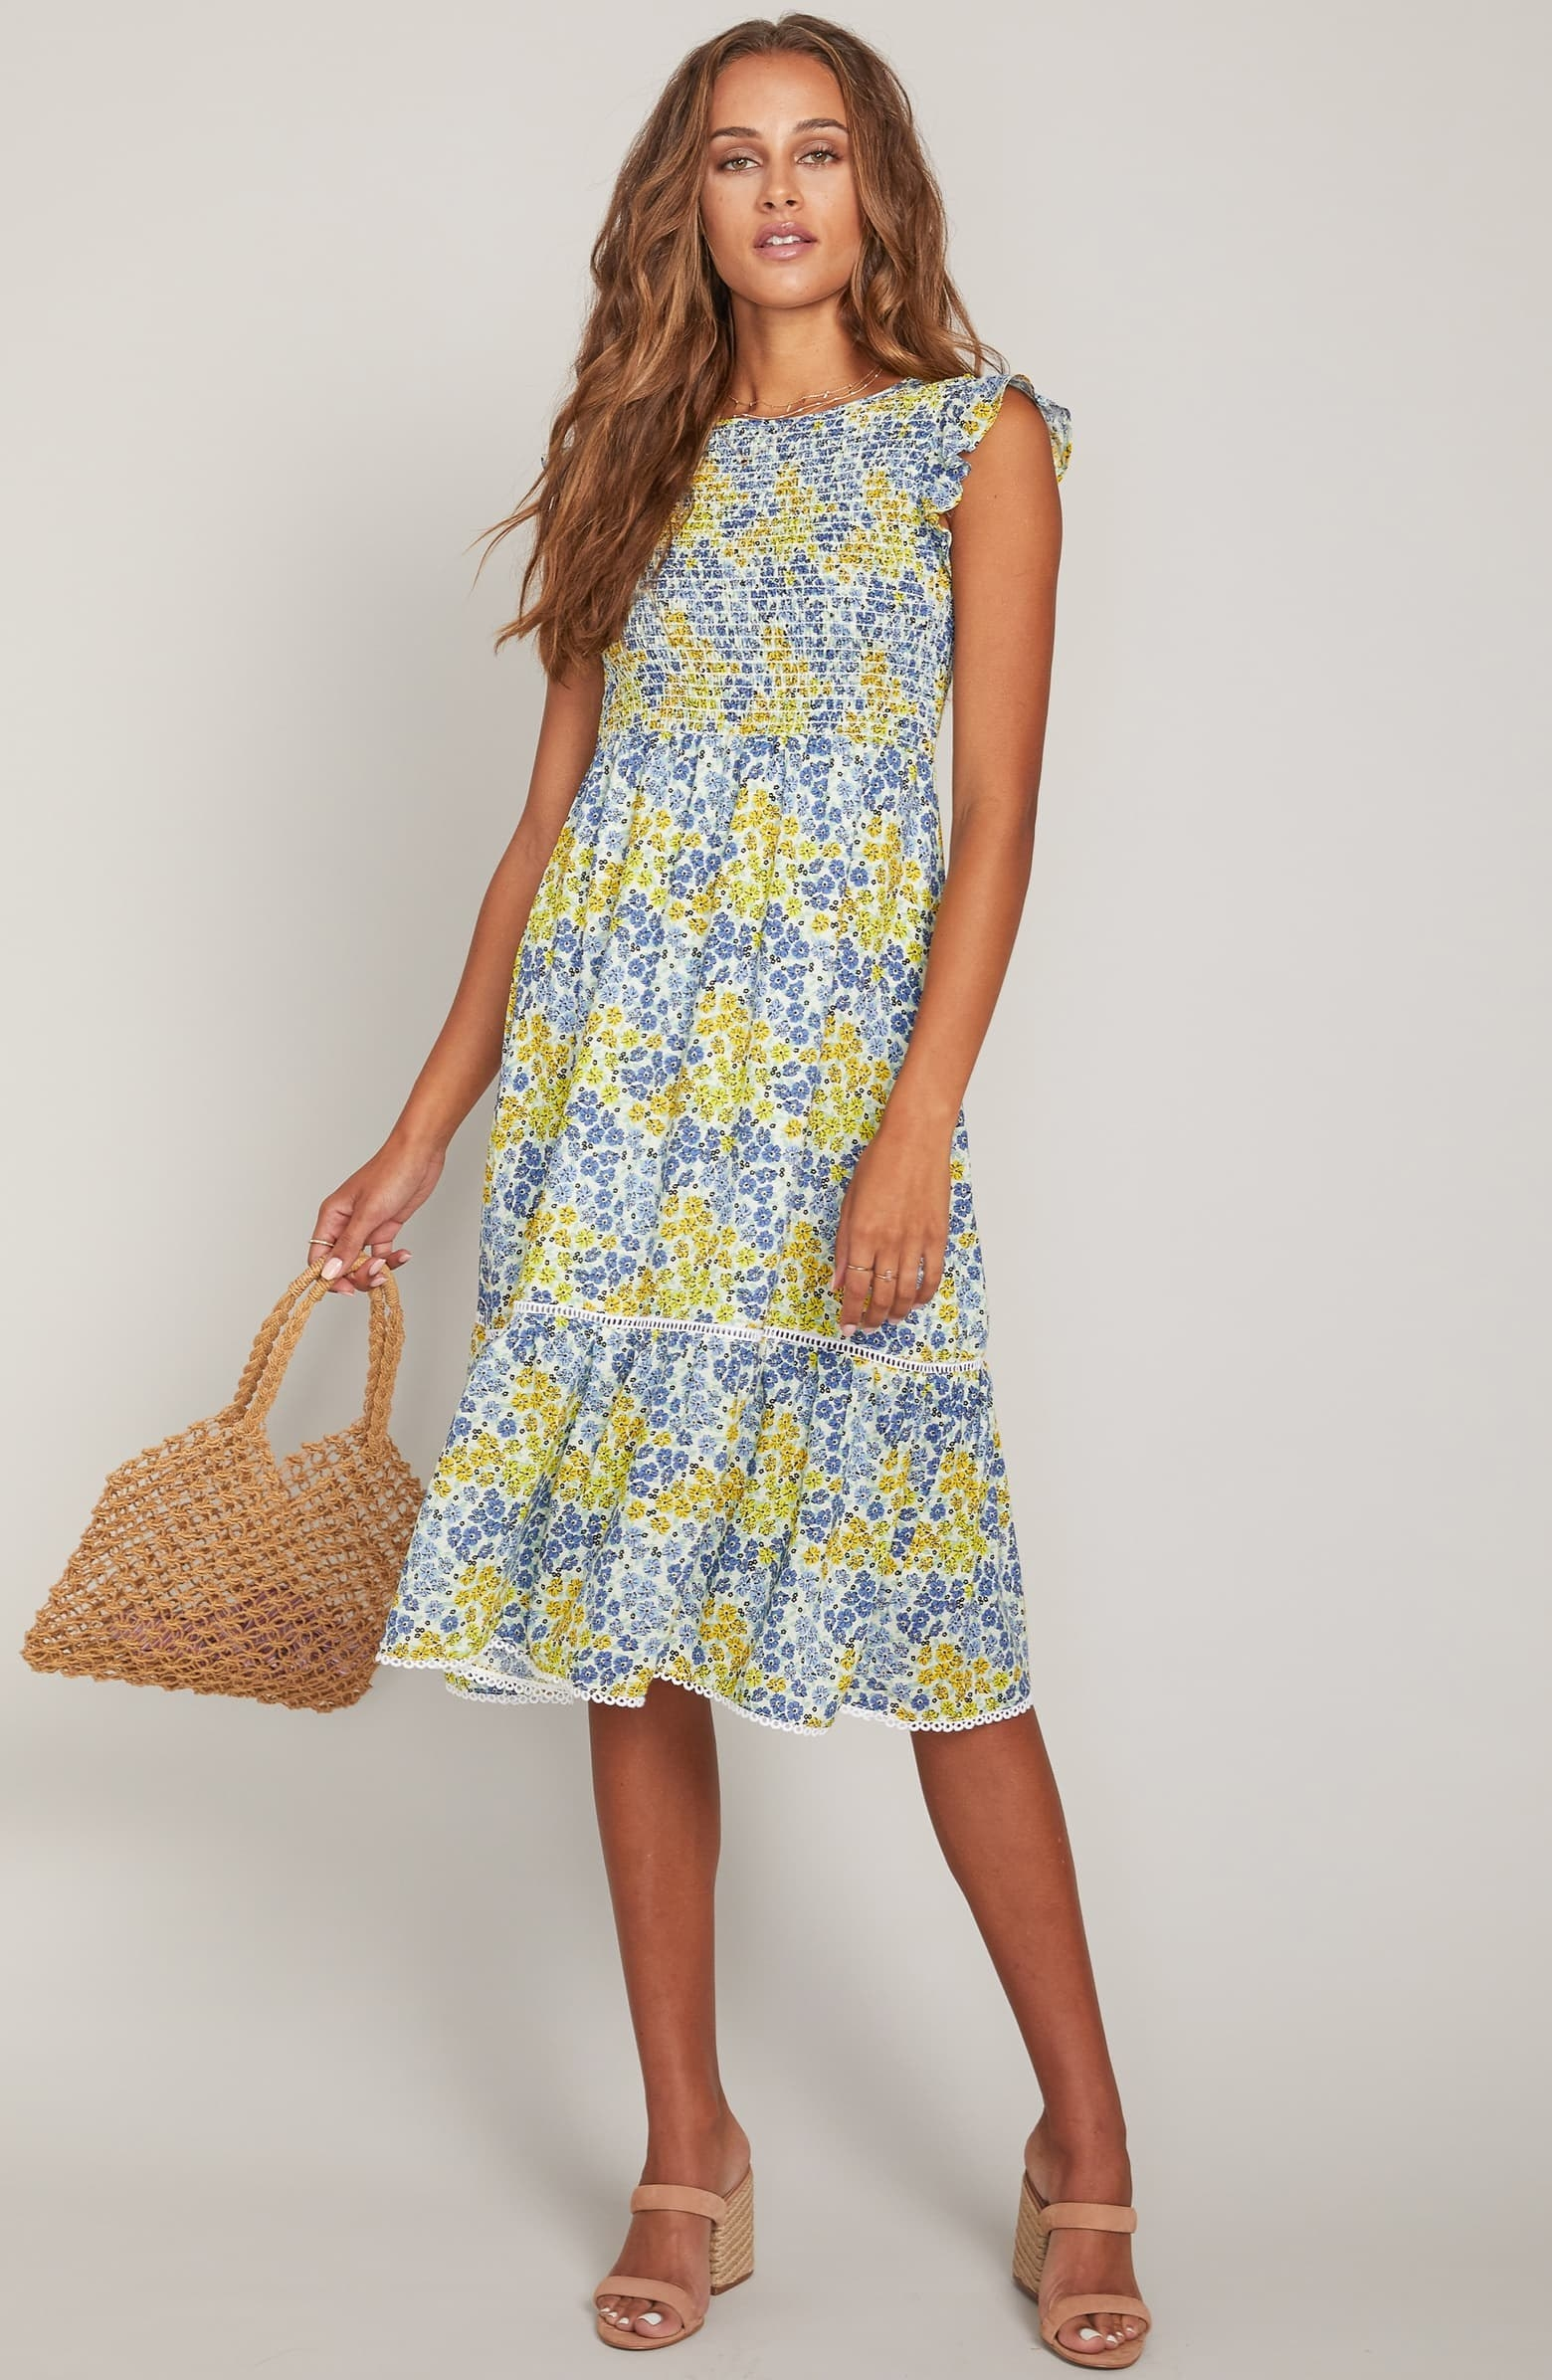 A model wears the floral dress with the smocked top that ends at the waist, where the dress flares slightly and hangs loosely down to the knees